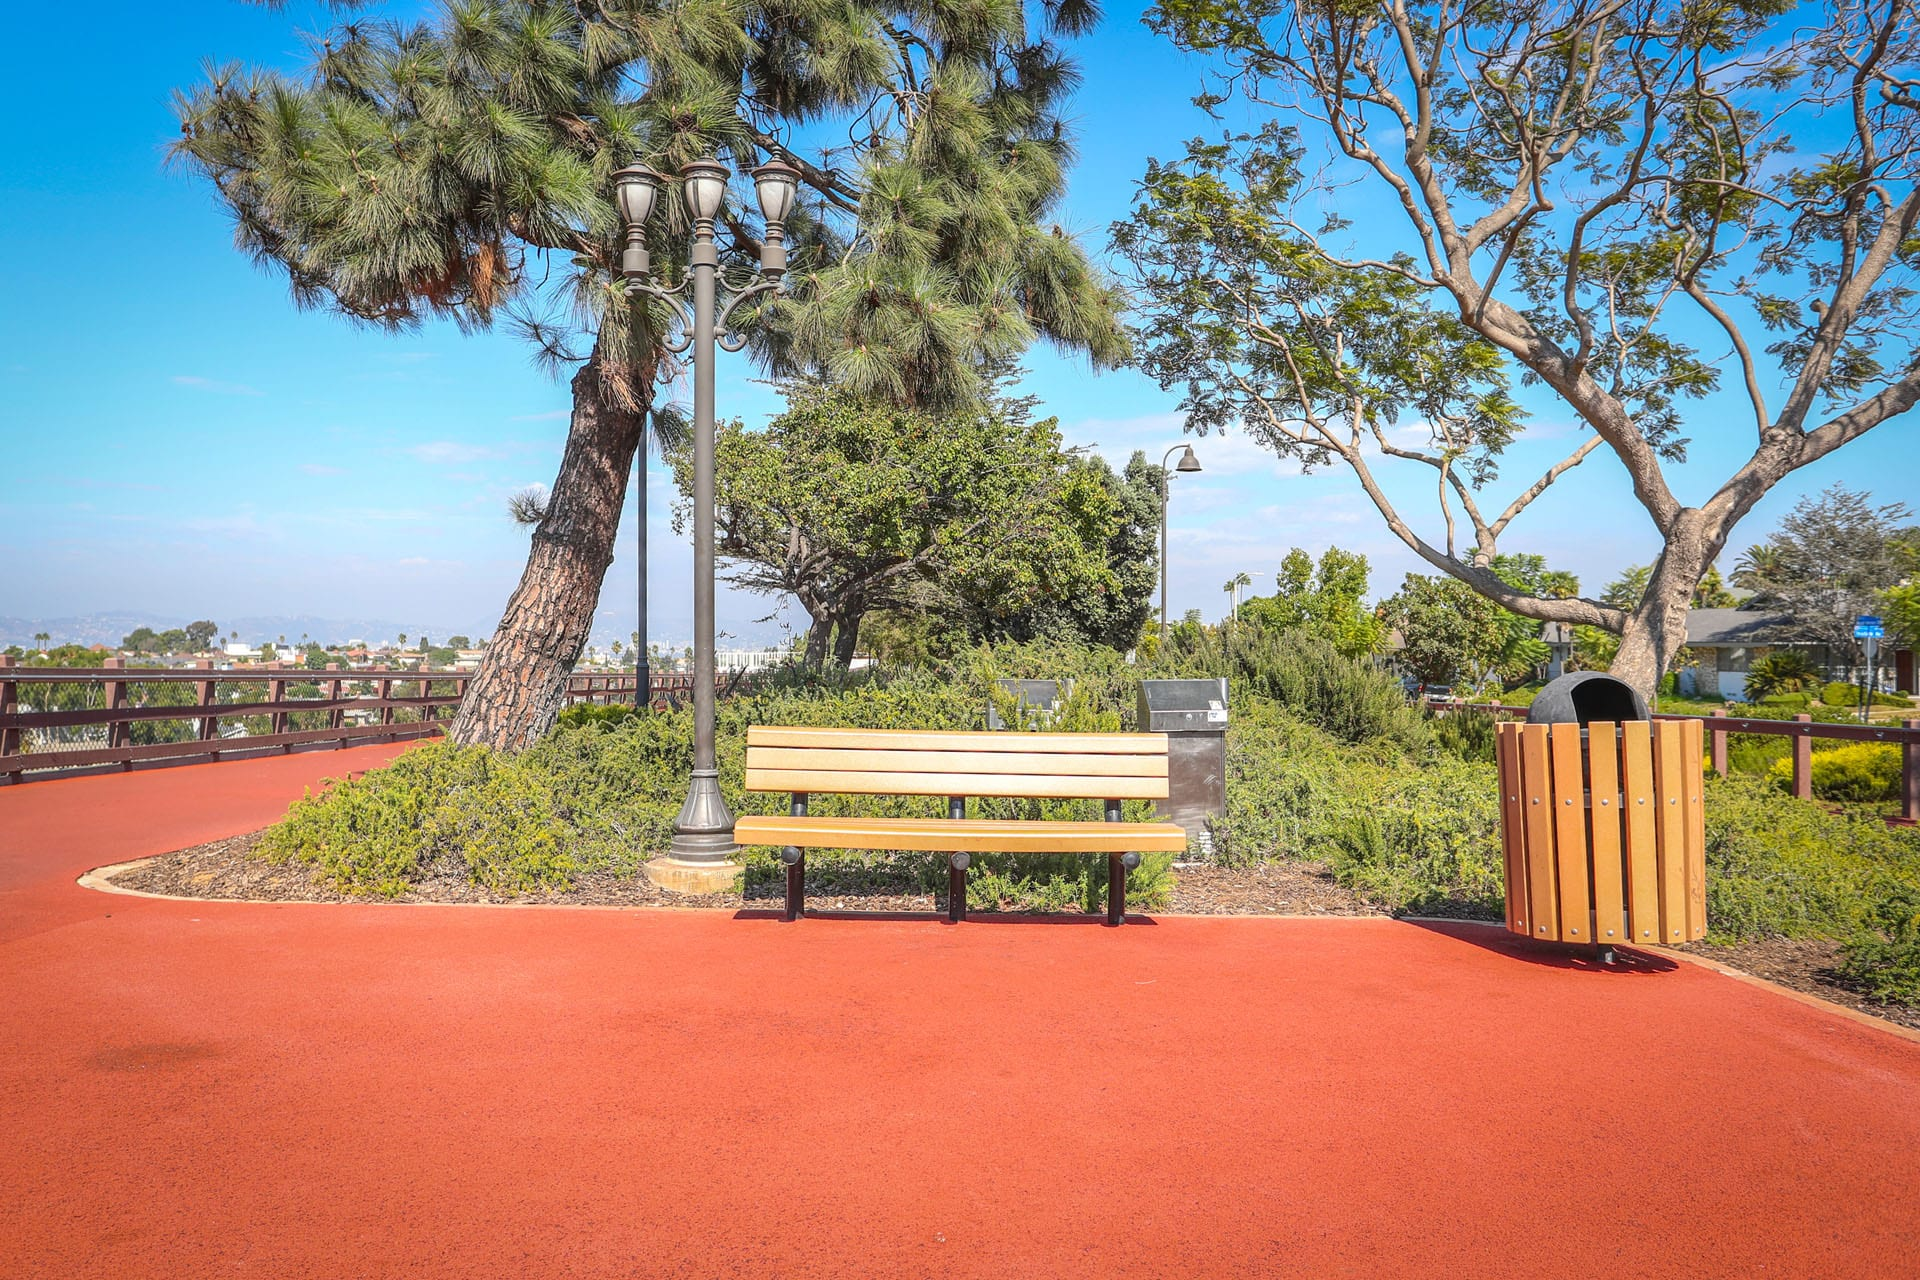 Red exercise track, bench and trash can